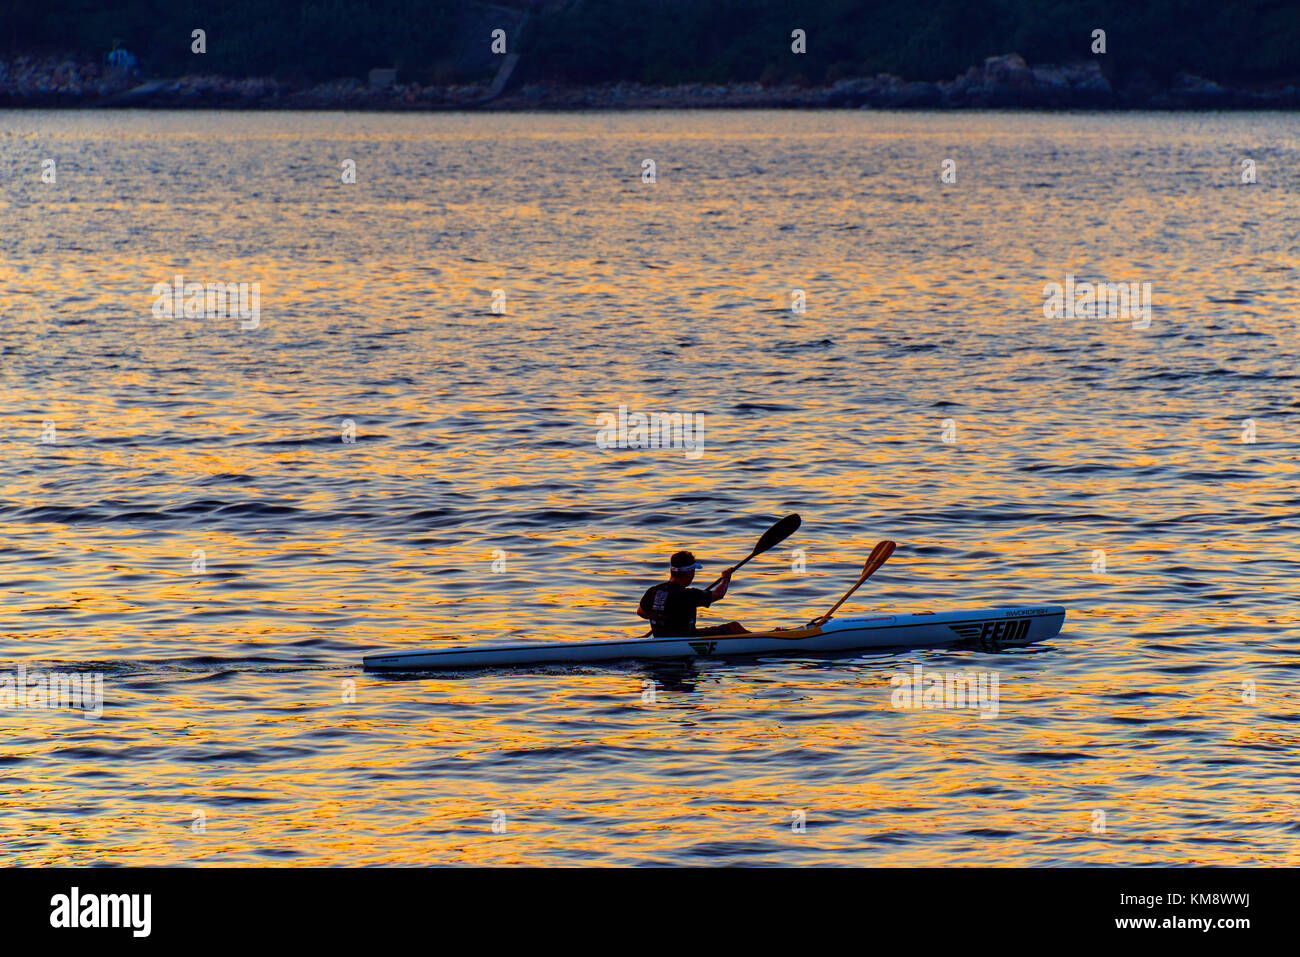 Canoeing at Sunset, Middle Bay, Hong Kong - Stock Image